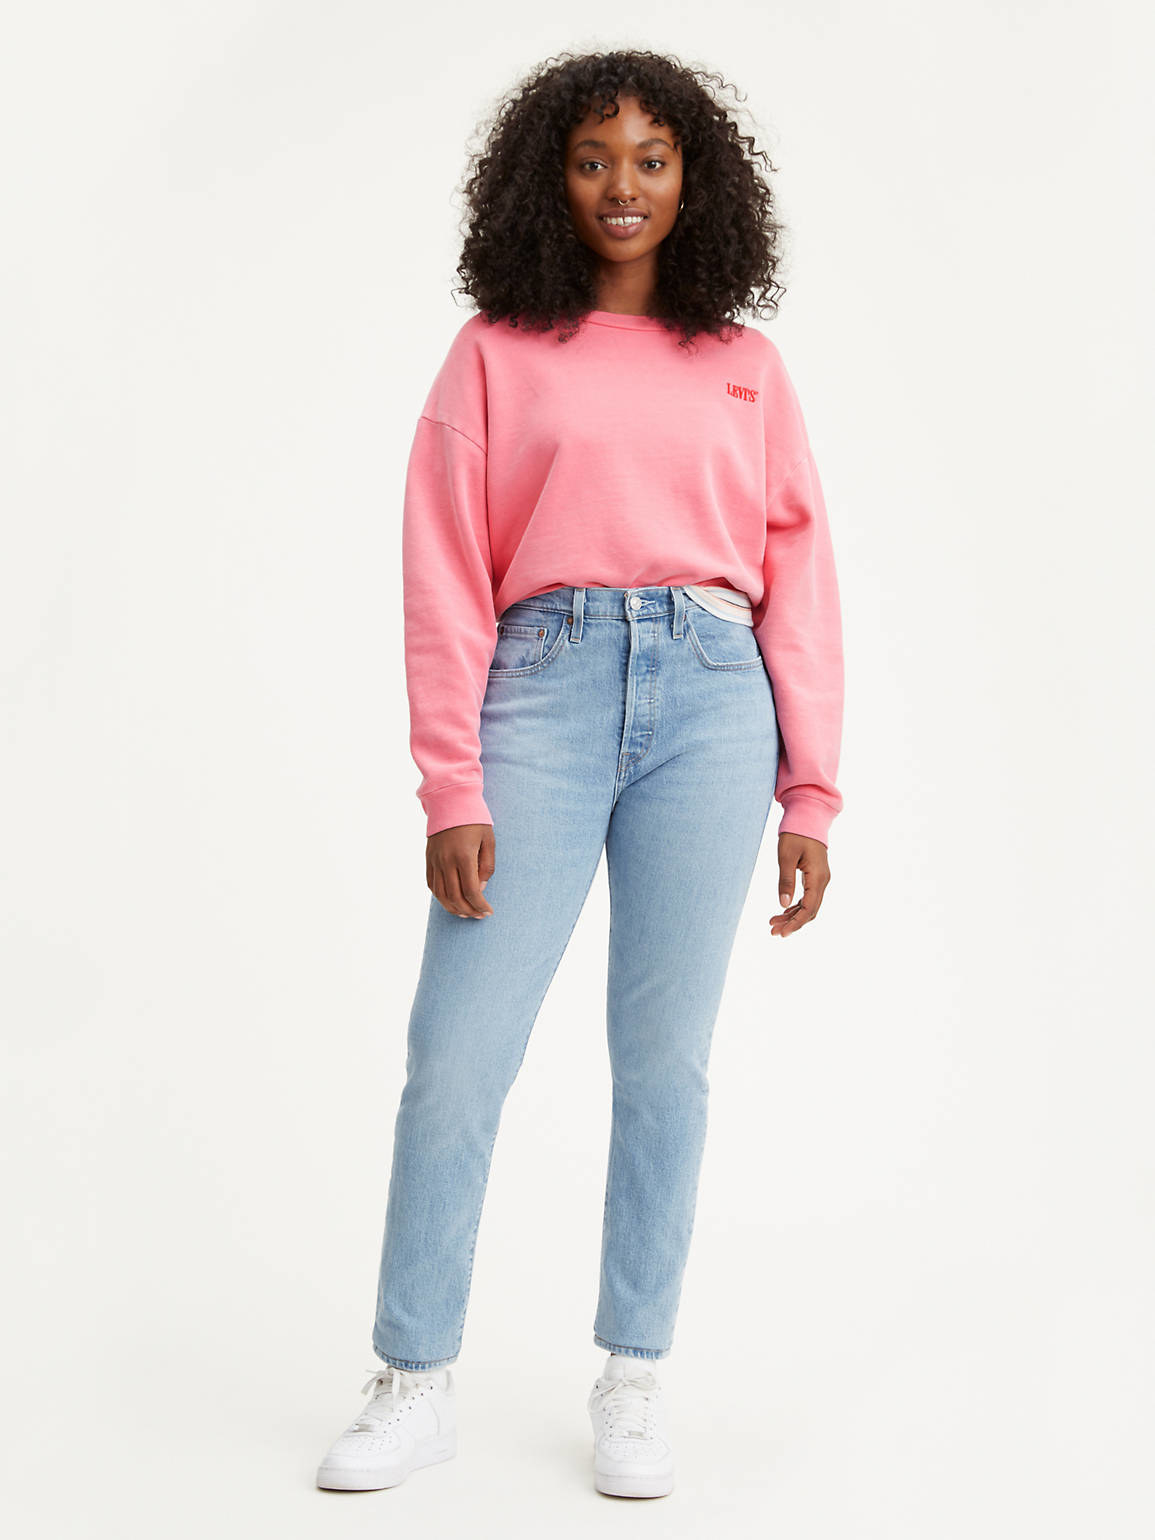 a model wearing the light-wash straight jeans with a pink sweater